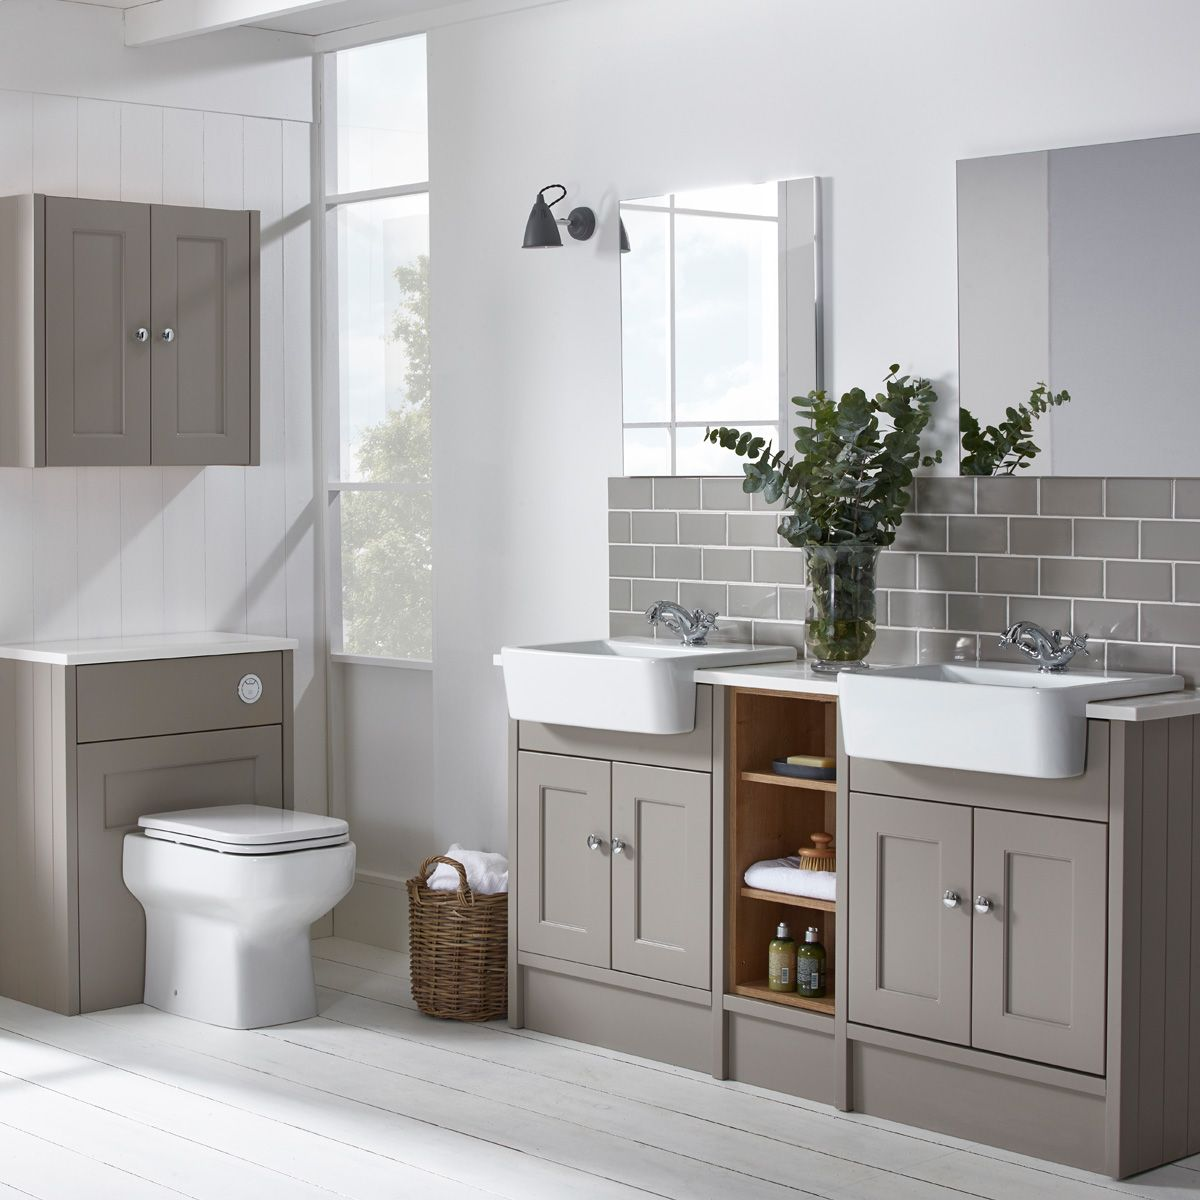 Roper Rhodes Burford Mocha His And Hers Fitted Bathroom Furniture Fitted Bathroom Bathroom Furniture